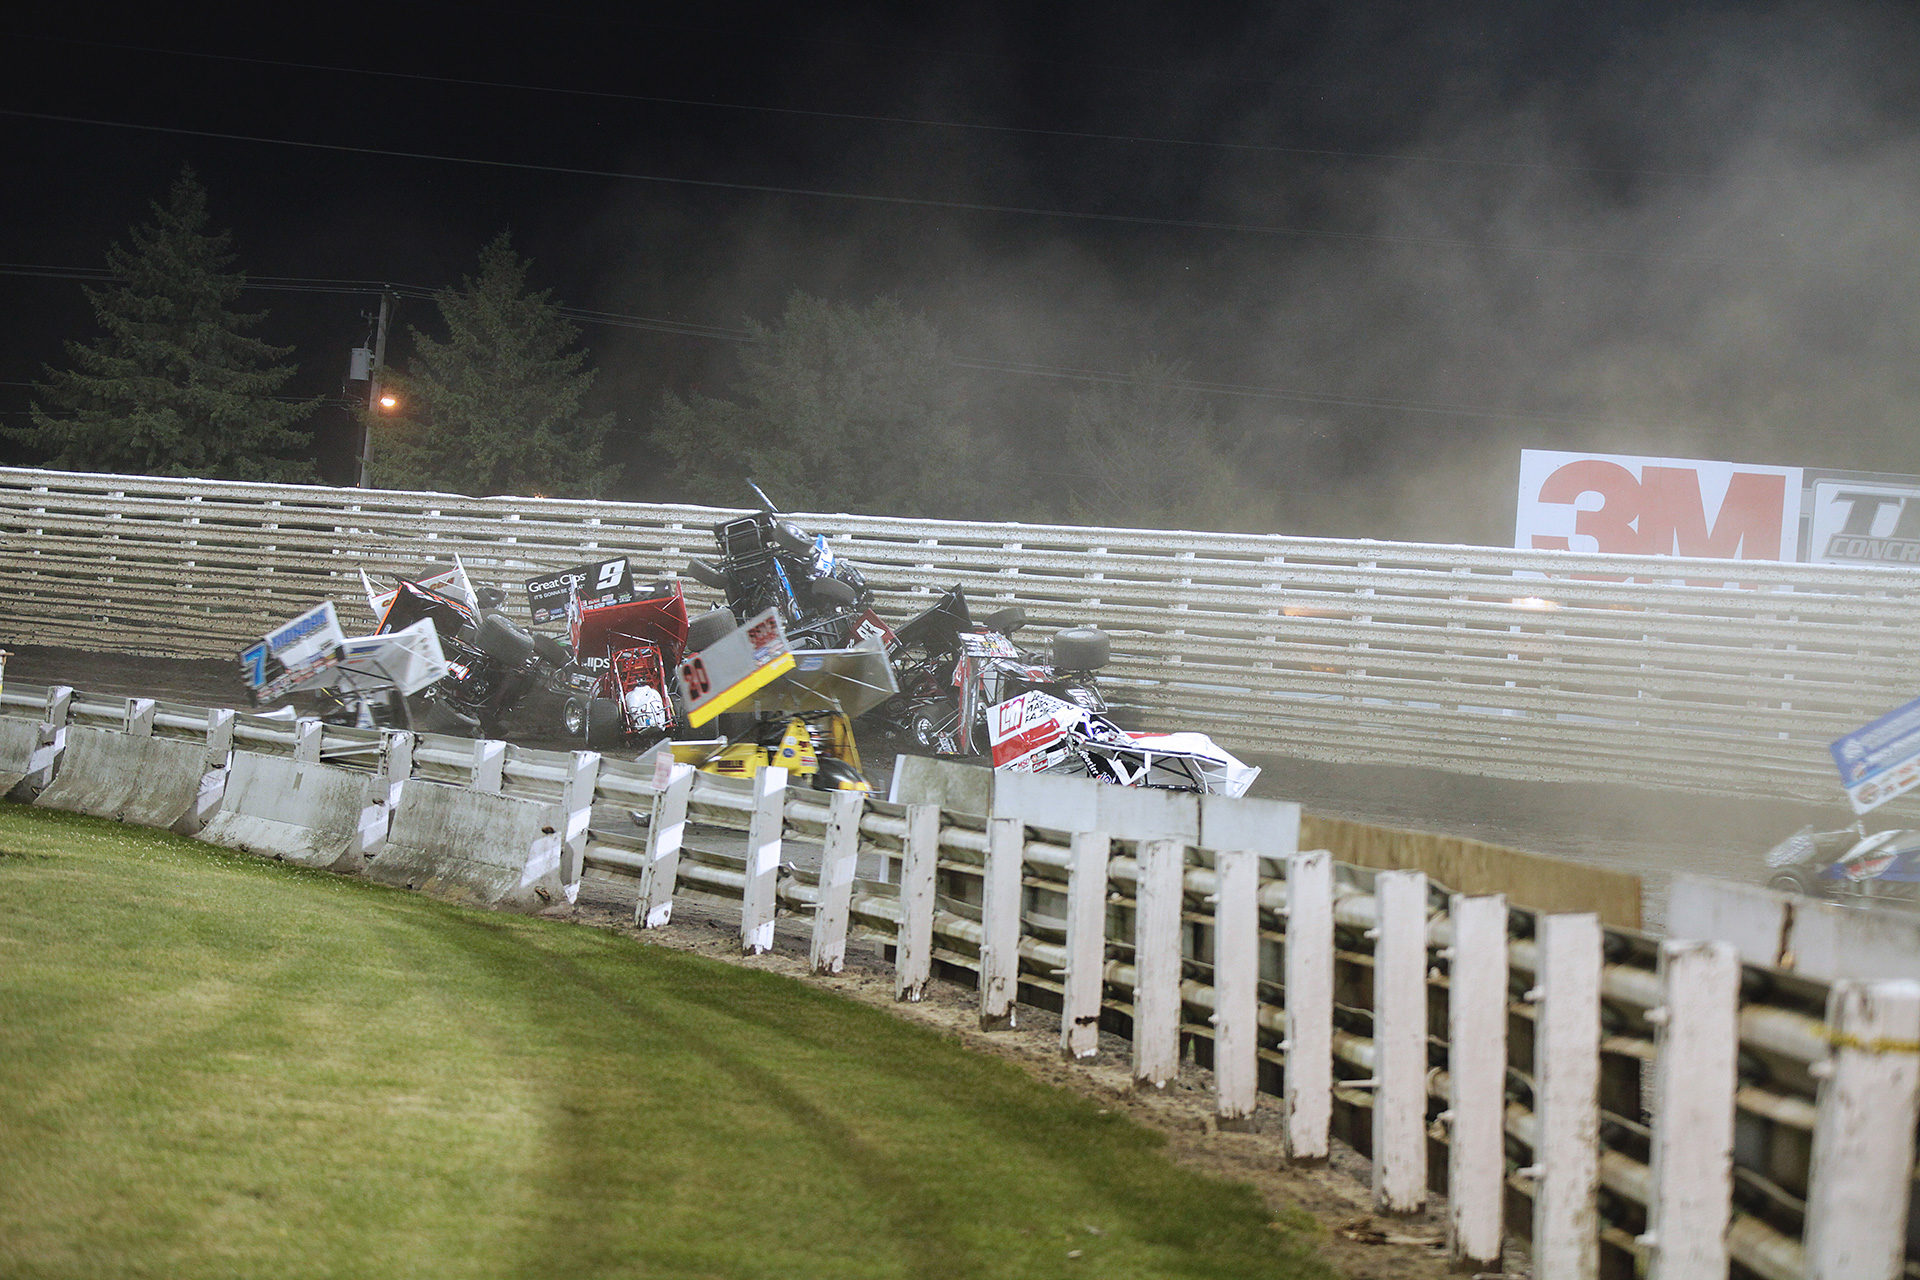 11 cars were caught in a massive wreck during the feature at Knoxville, no injuries were reported. ( Jeffrey Turford / TDP )